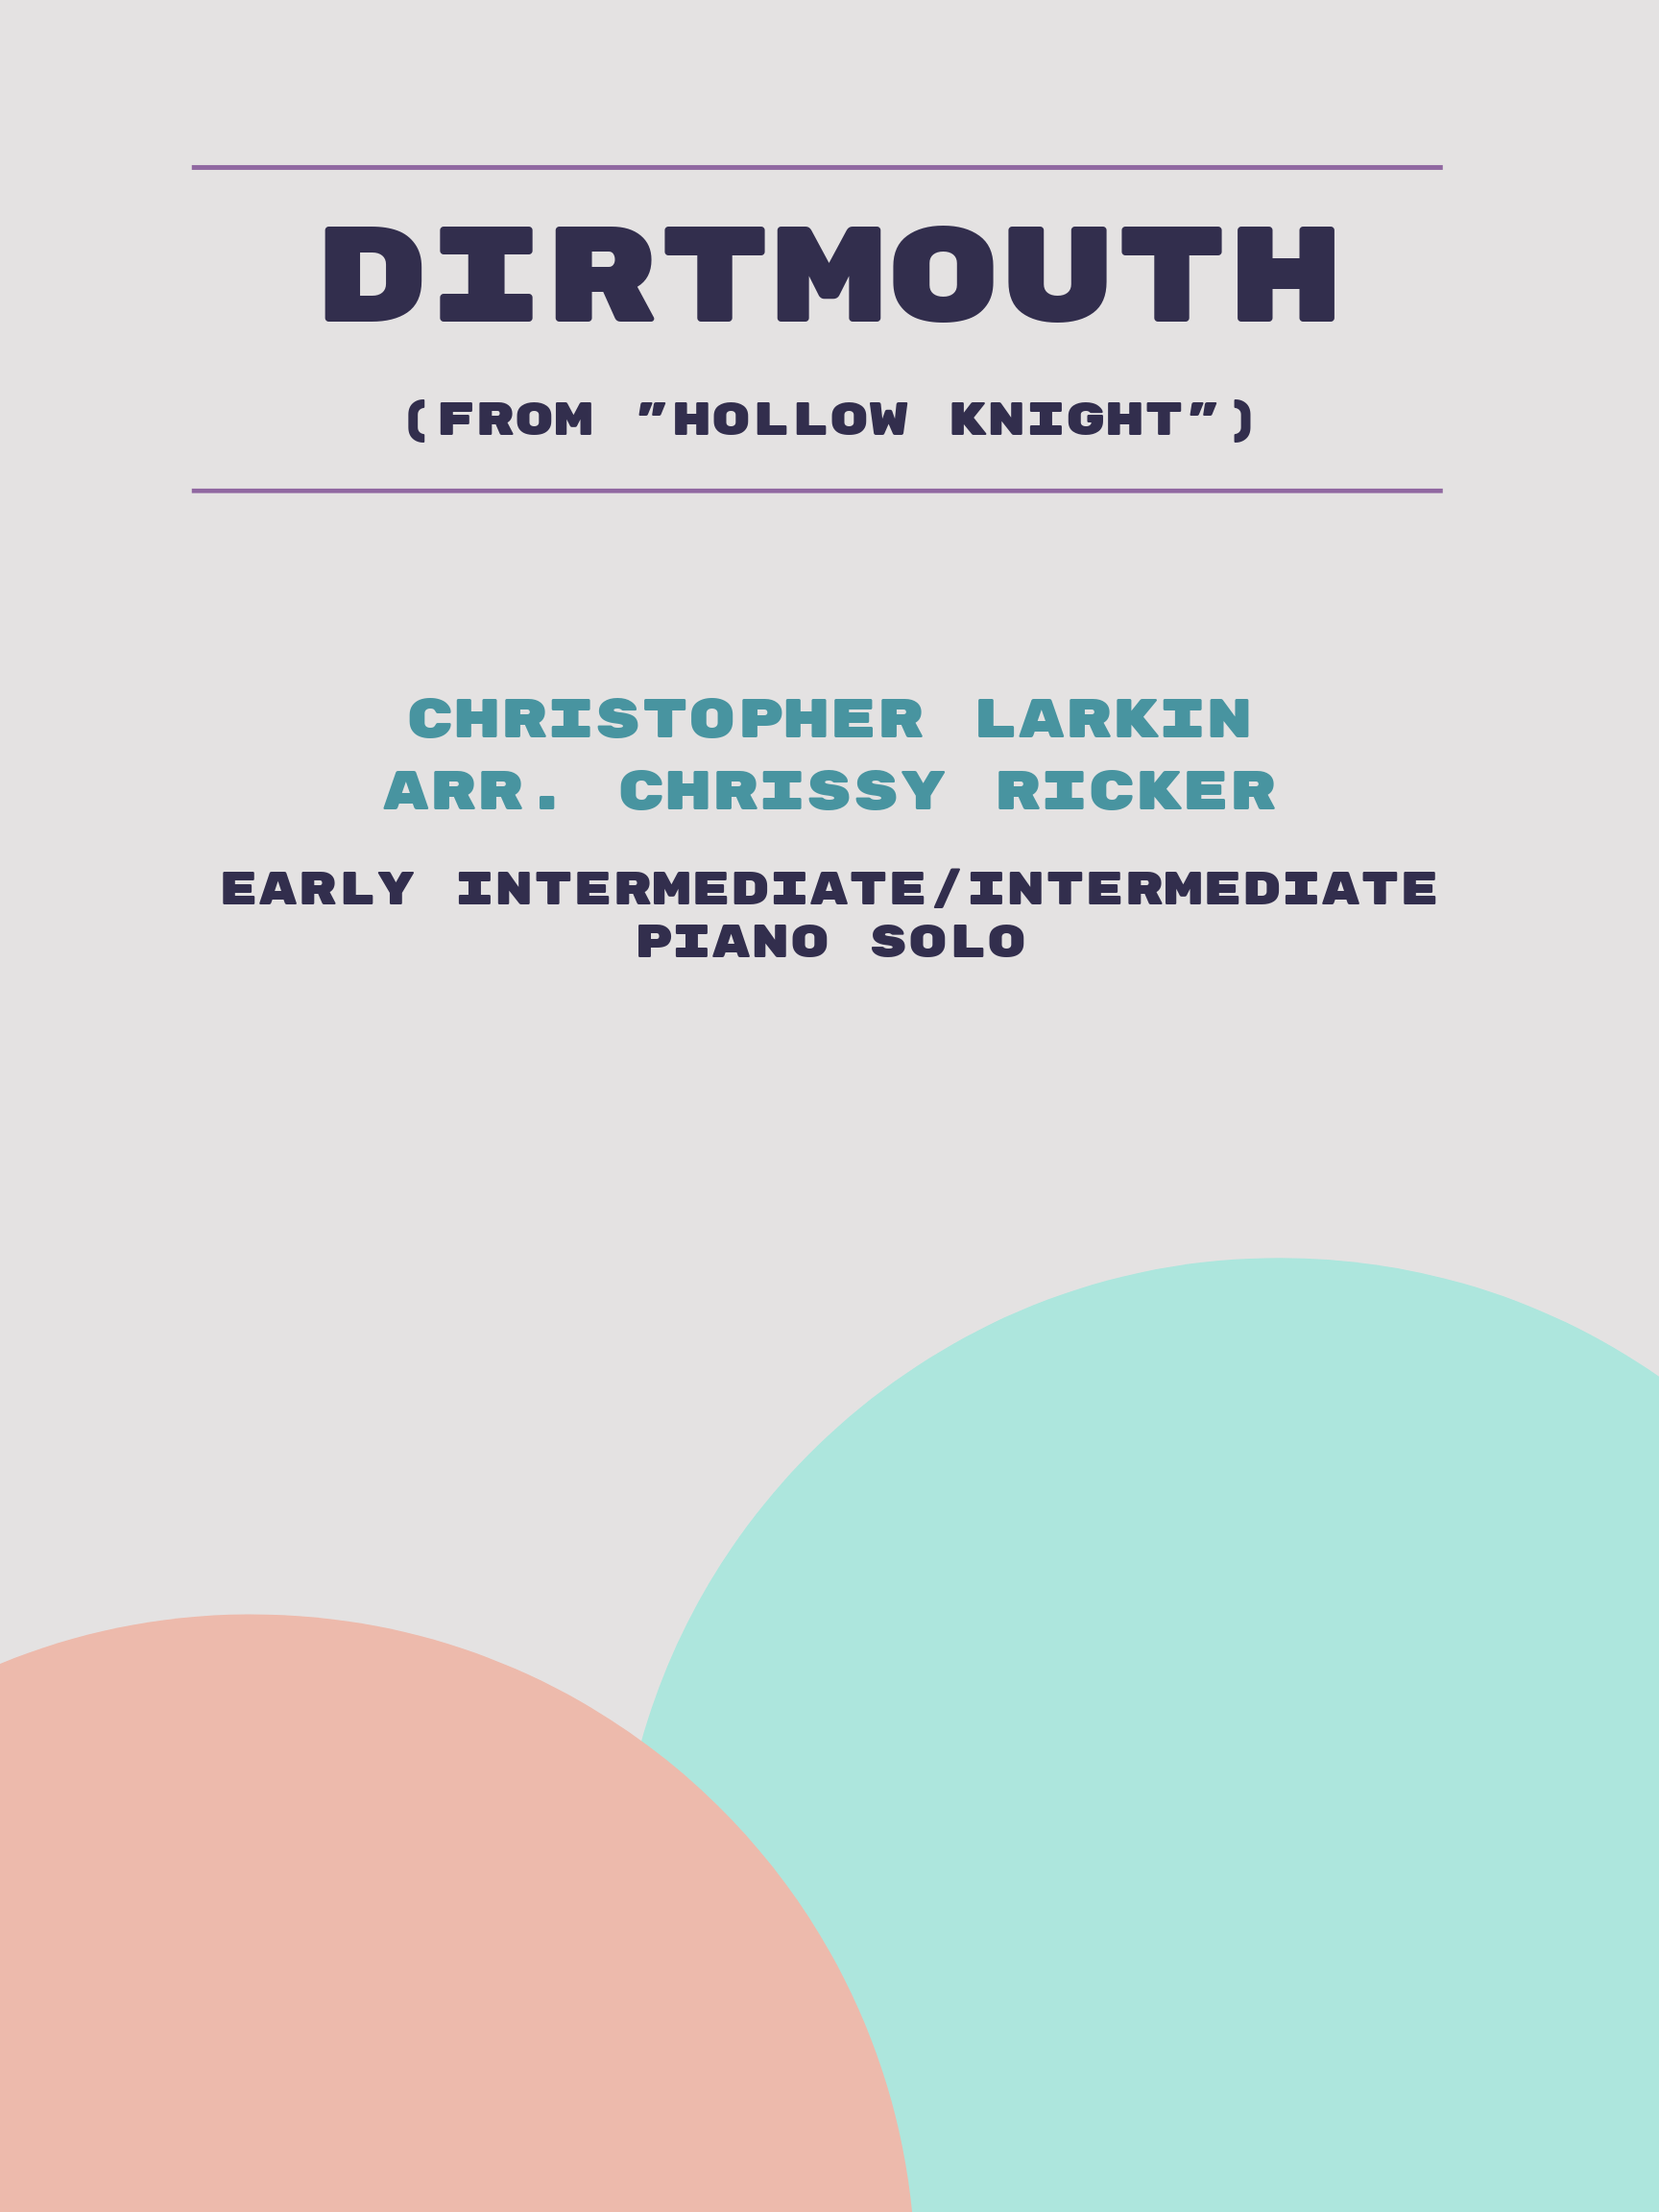 Dirtmouth by Christopher Larkin